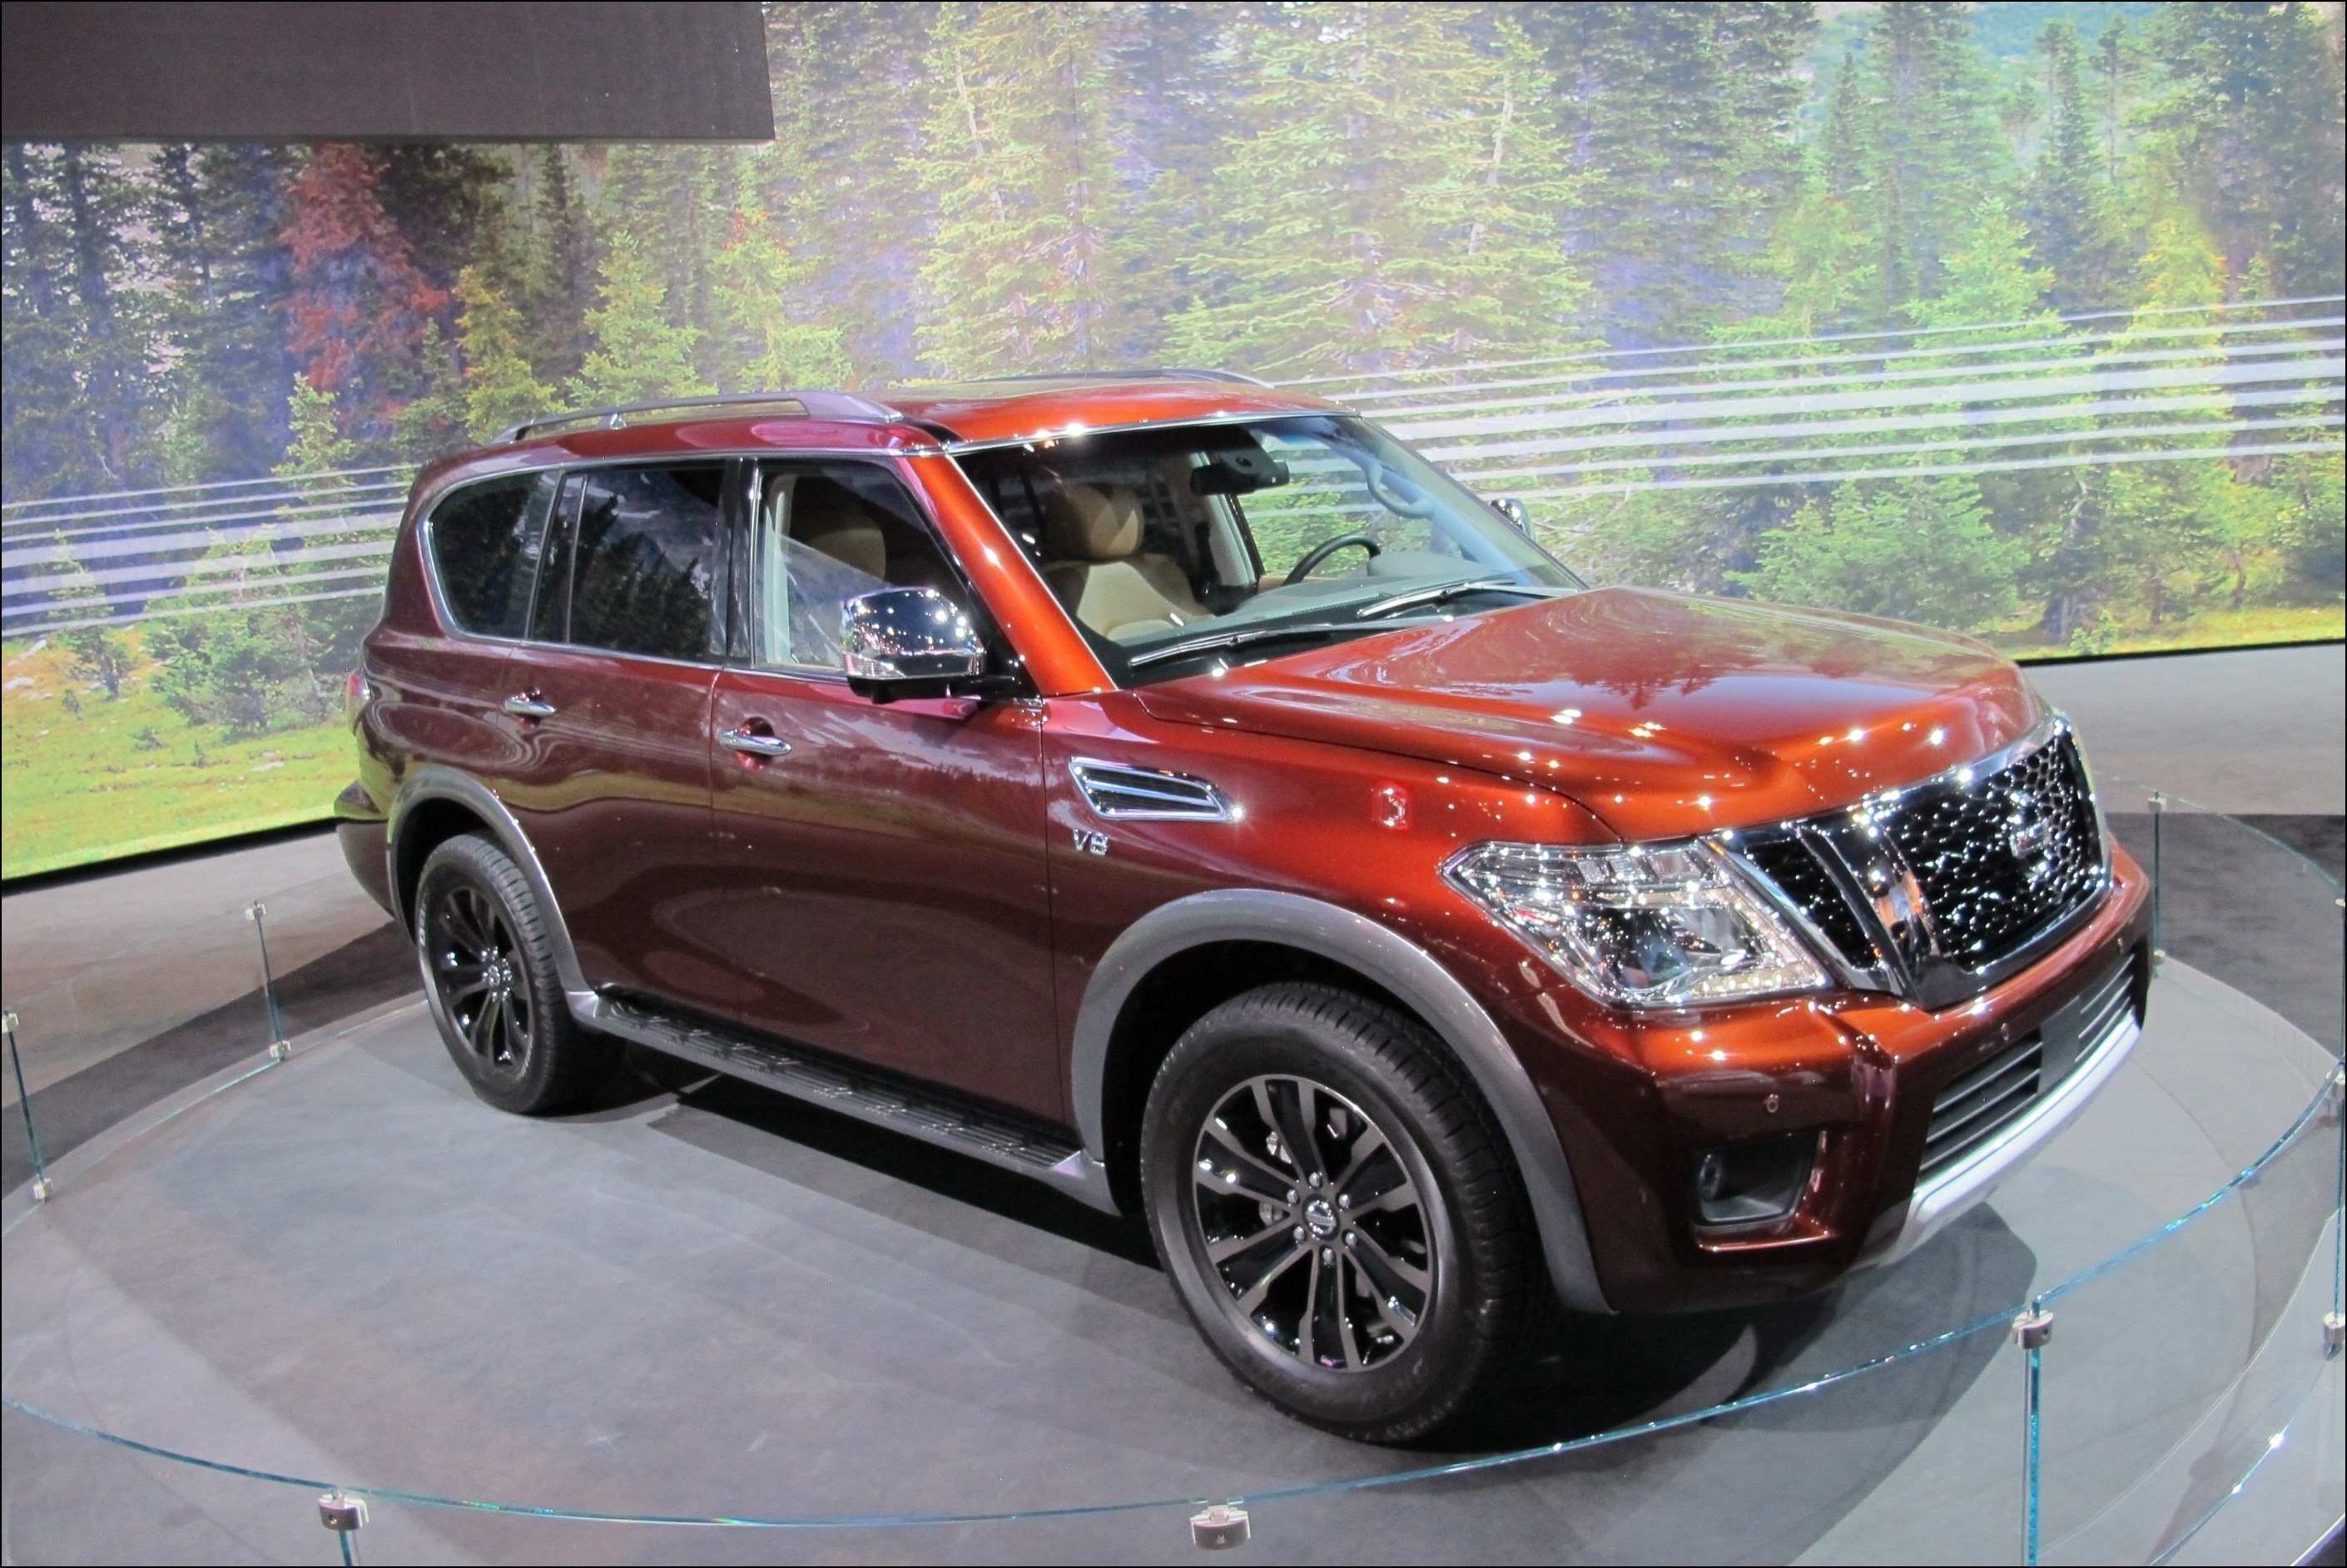 80 New 2020 Nissan Patrol 2018 Style by 2020 Nissan Patrol 2018